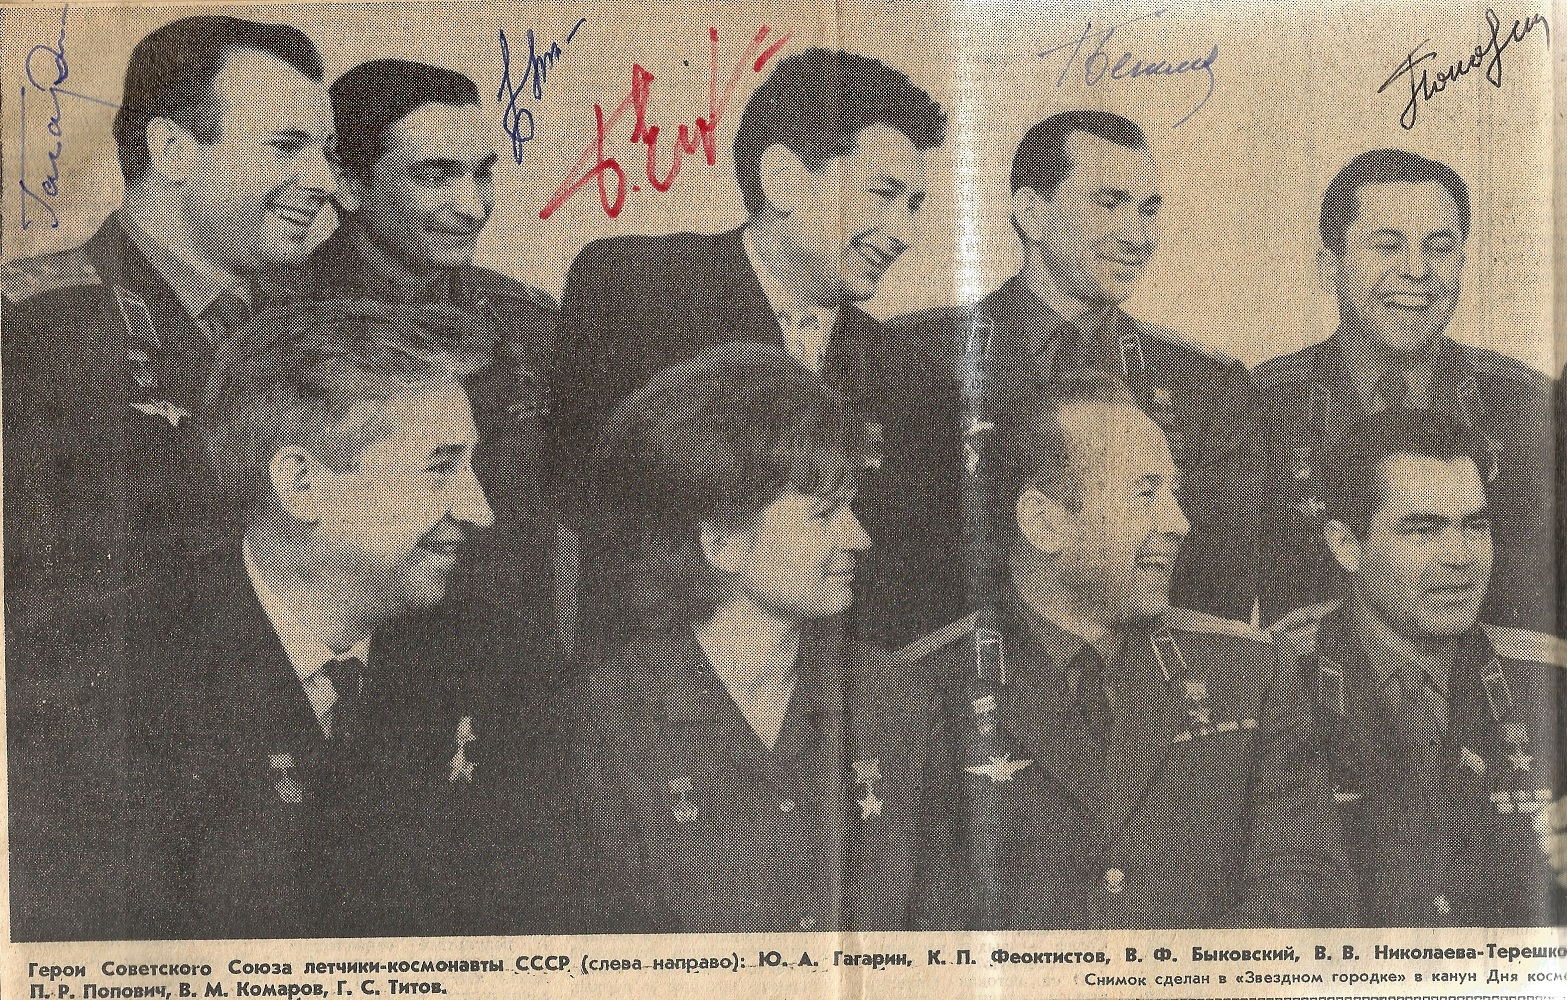 1950/60s Russian Cosmonauts multiple signed hard backed scrapbook compiled by a worker at Baikonur - Image 22 of 22